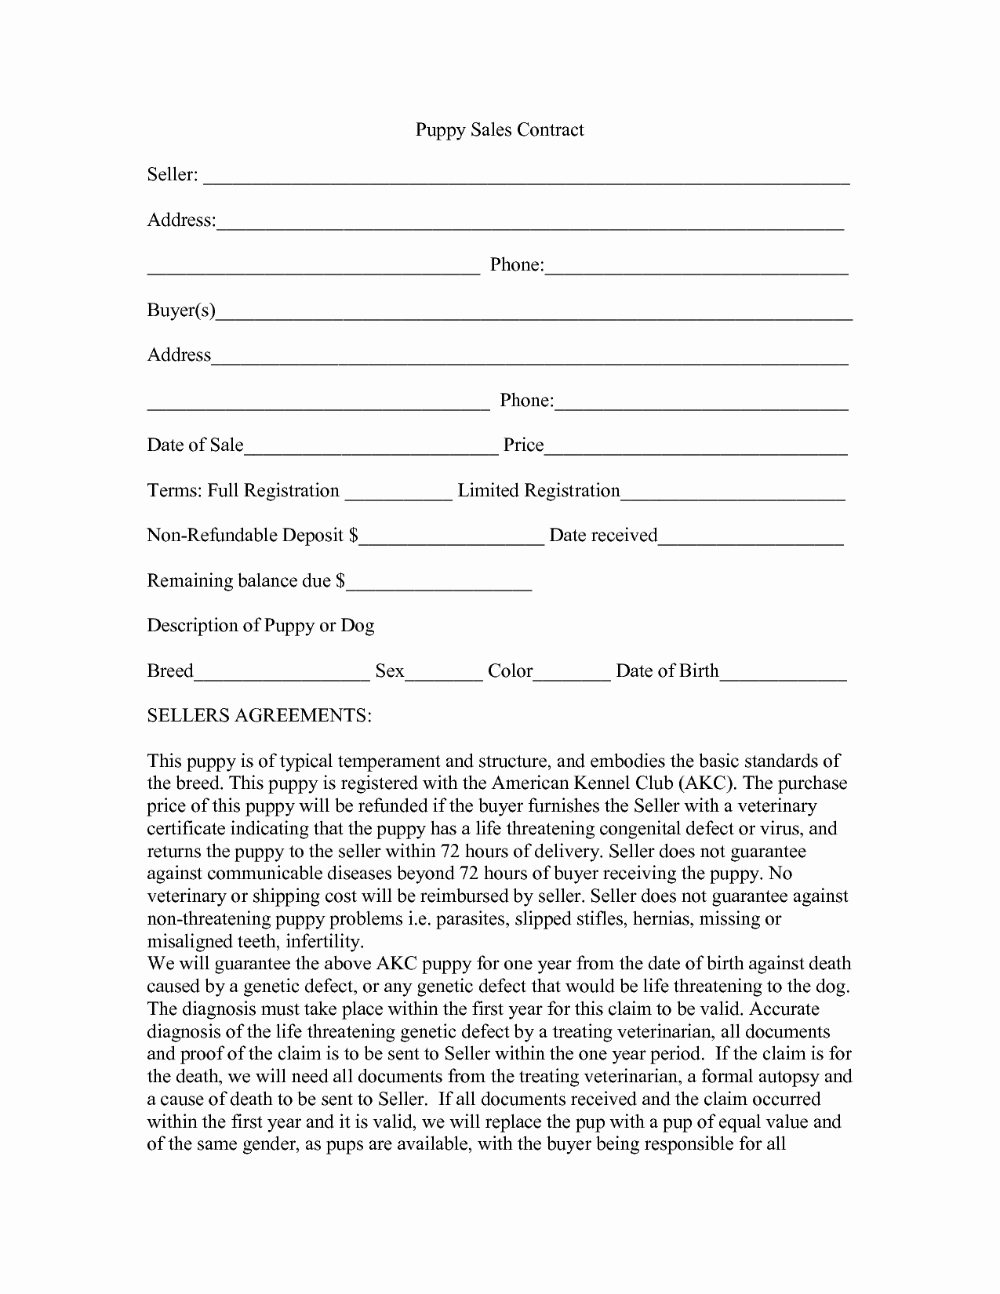 Puppy Sales Contract Template Pictimilitude pertaining to